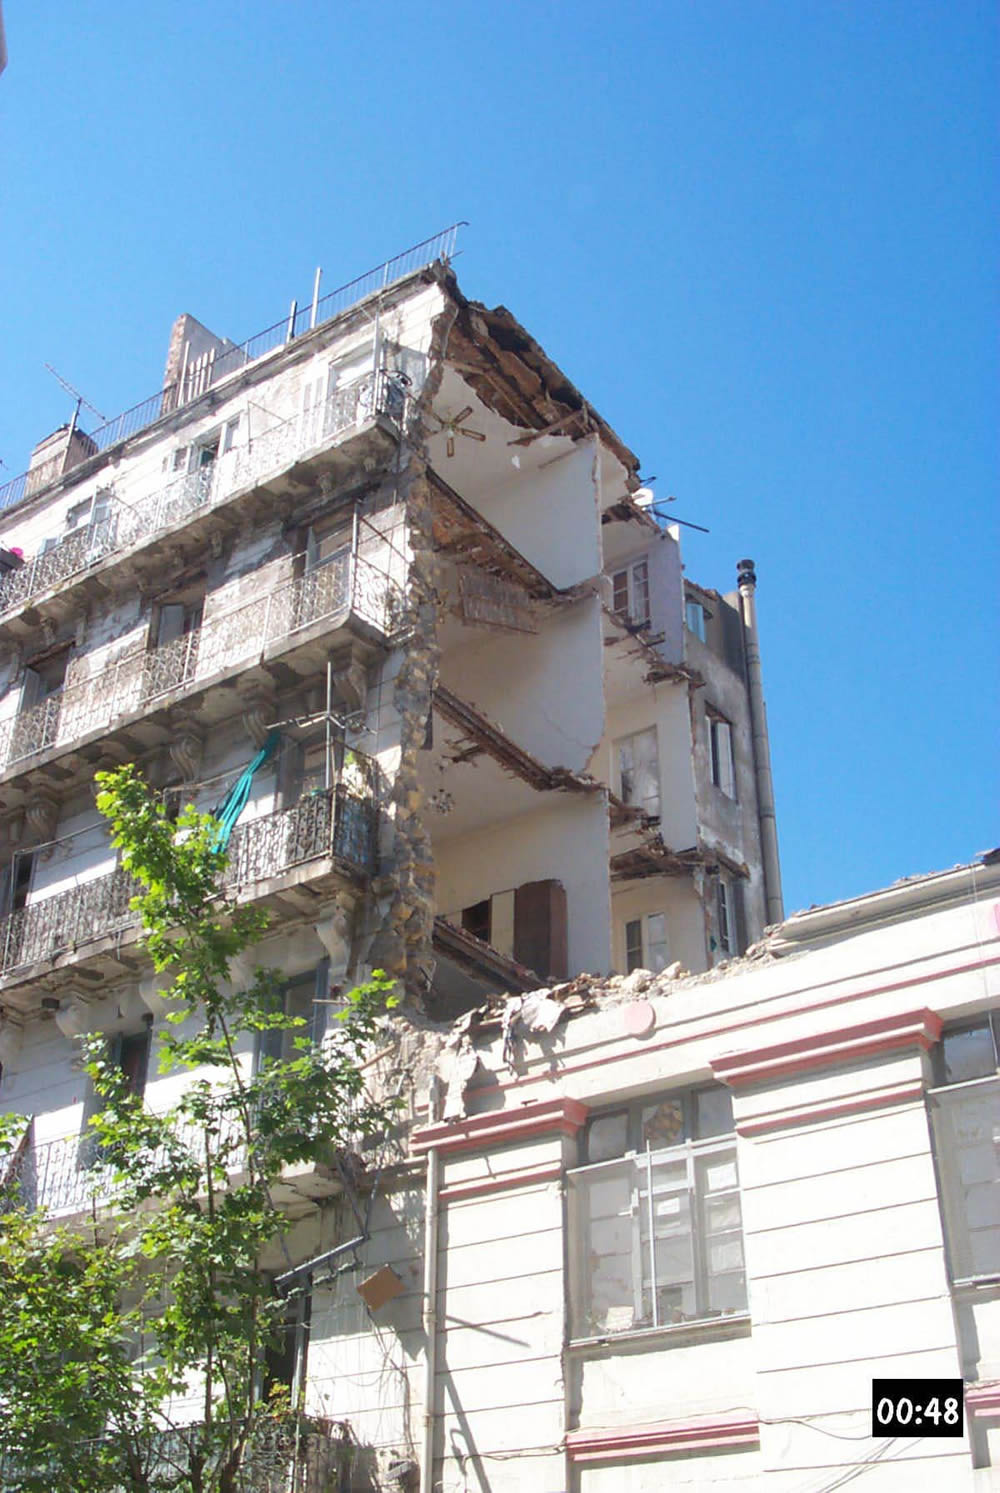 Delightful Damage To A Stone Masonry Building InAlgiers In The May 21, 2003 Earthquake